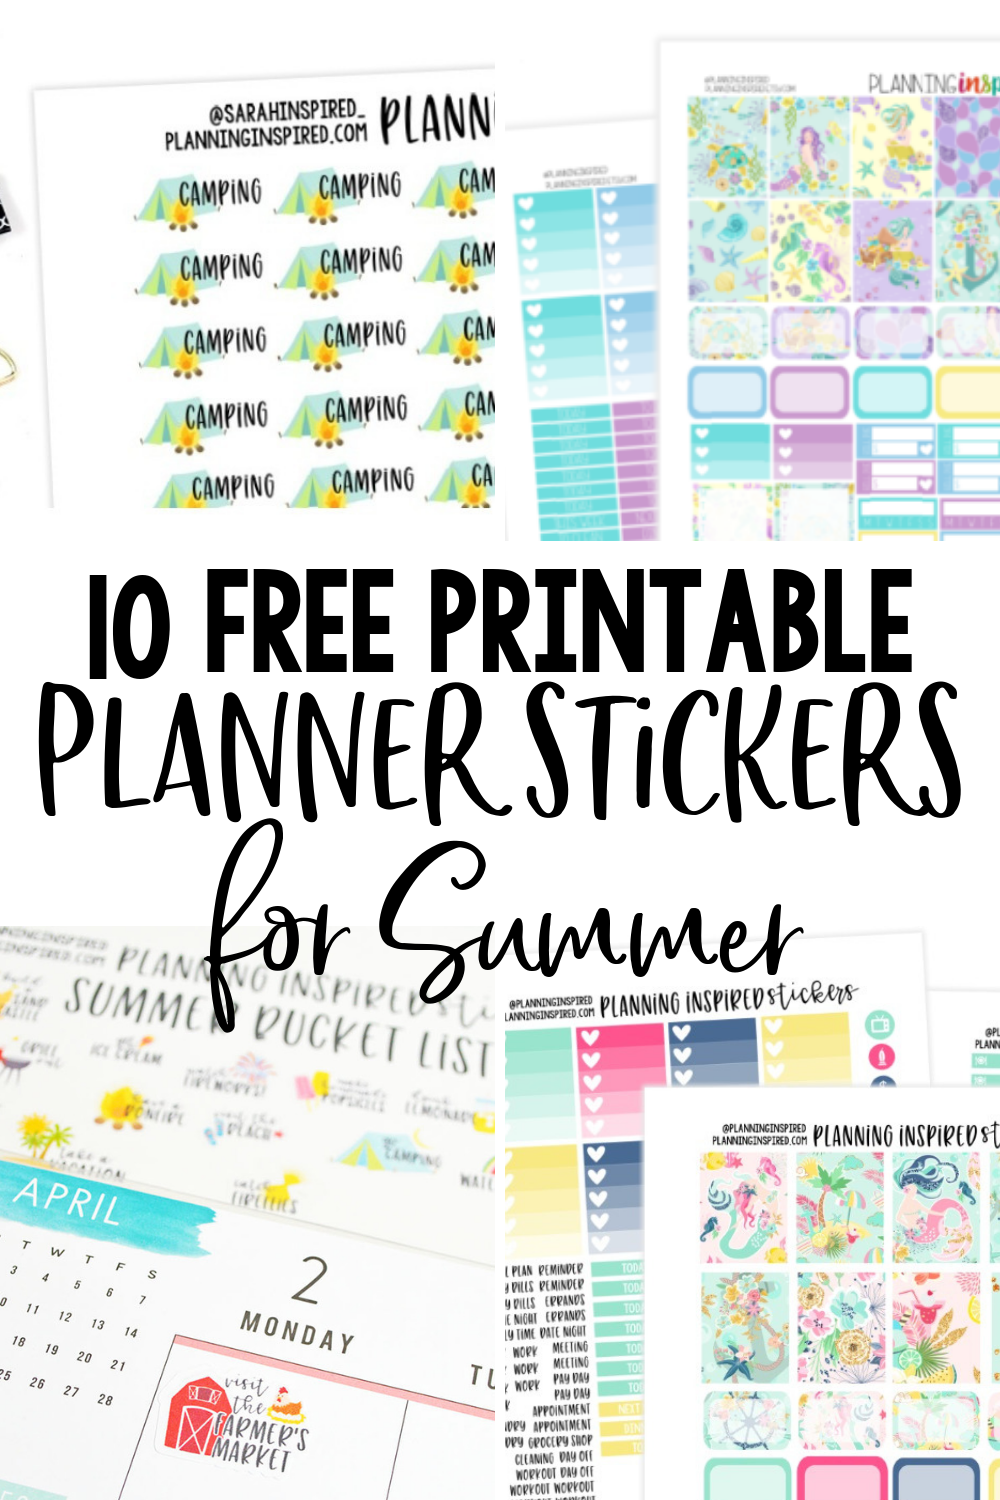 10 Free Printable Planner Stickers for Summer - Planning ...